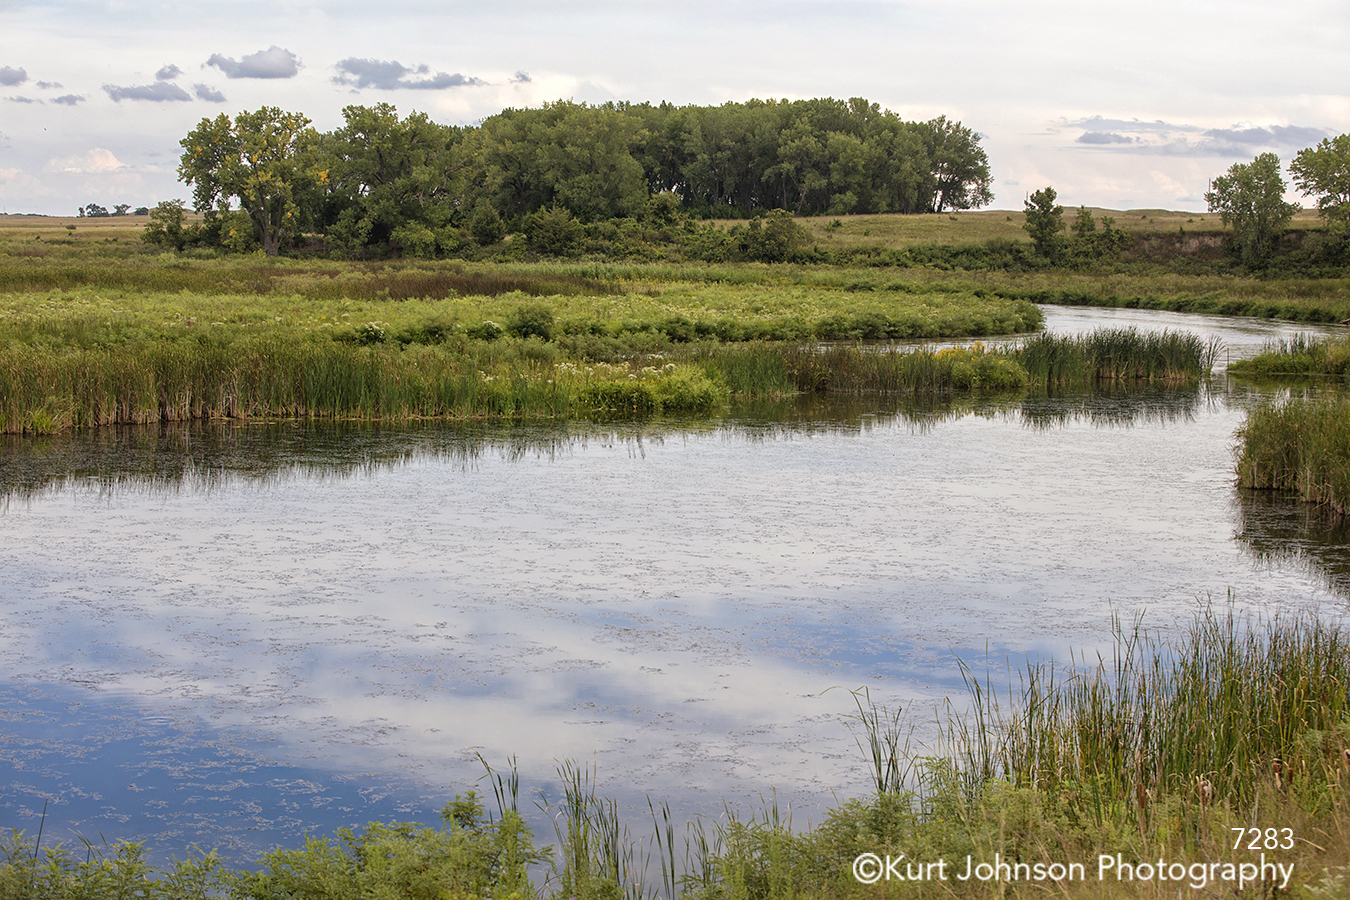 calm still water blue sky clouds reflection green grasses trees landscape waterscape